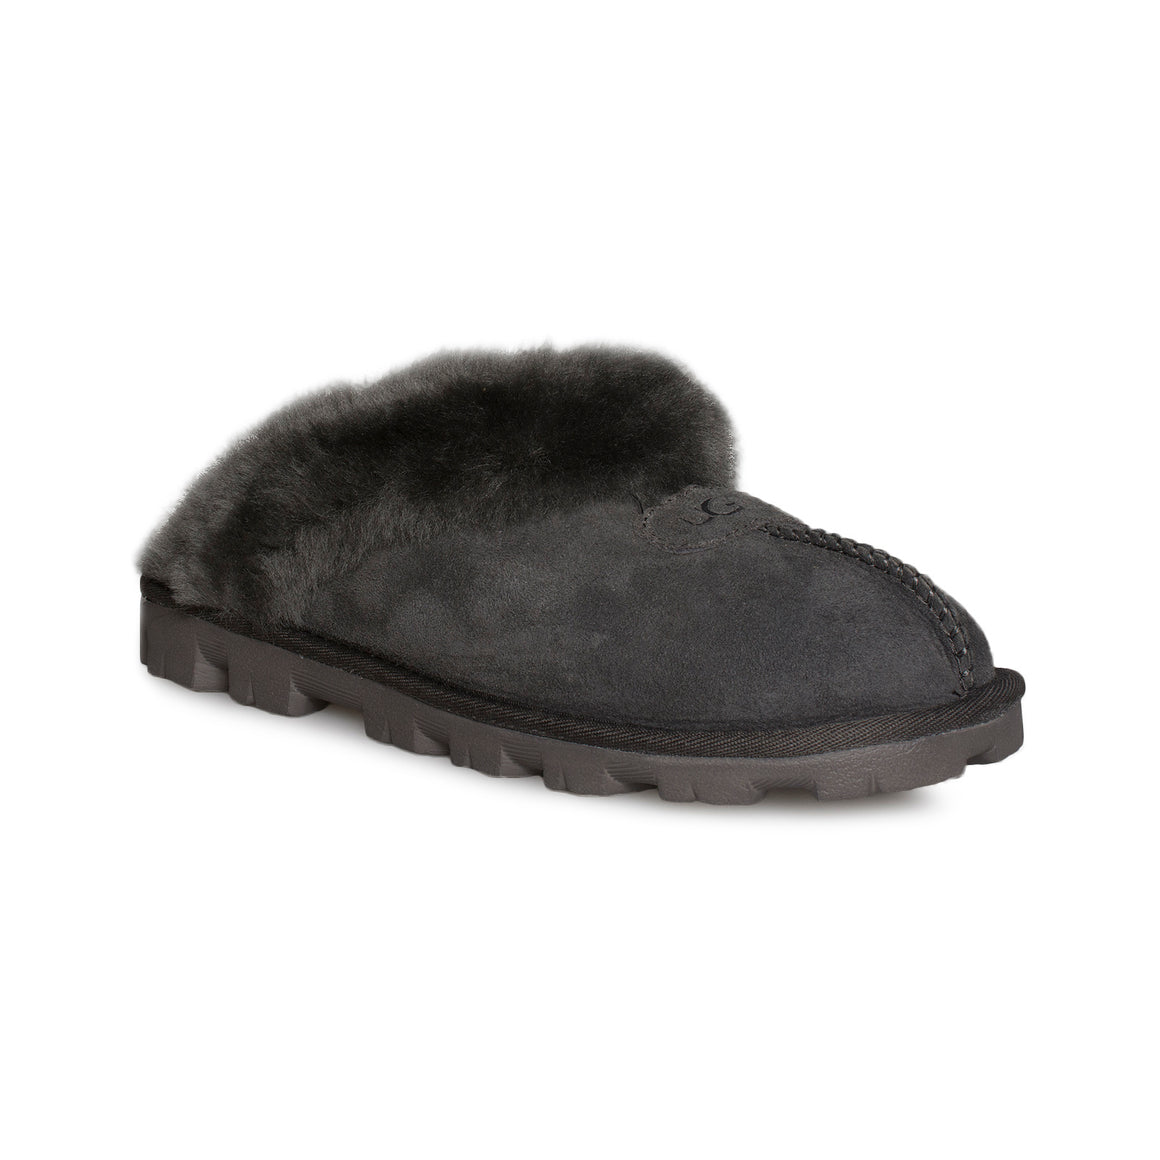 UGG Coquette Black Olive Slippers - Women's